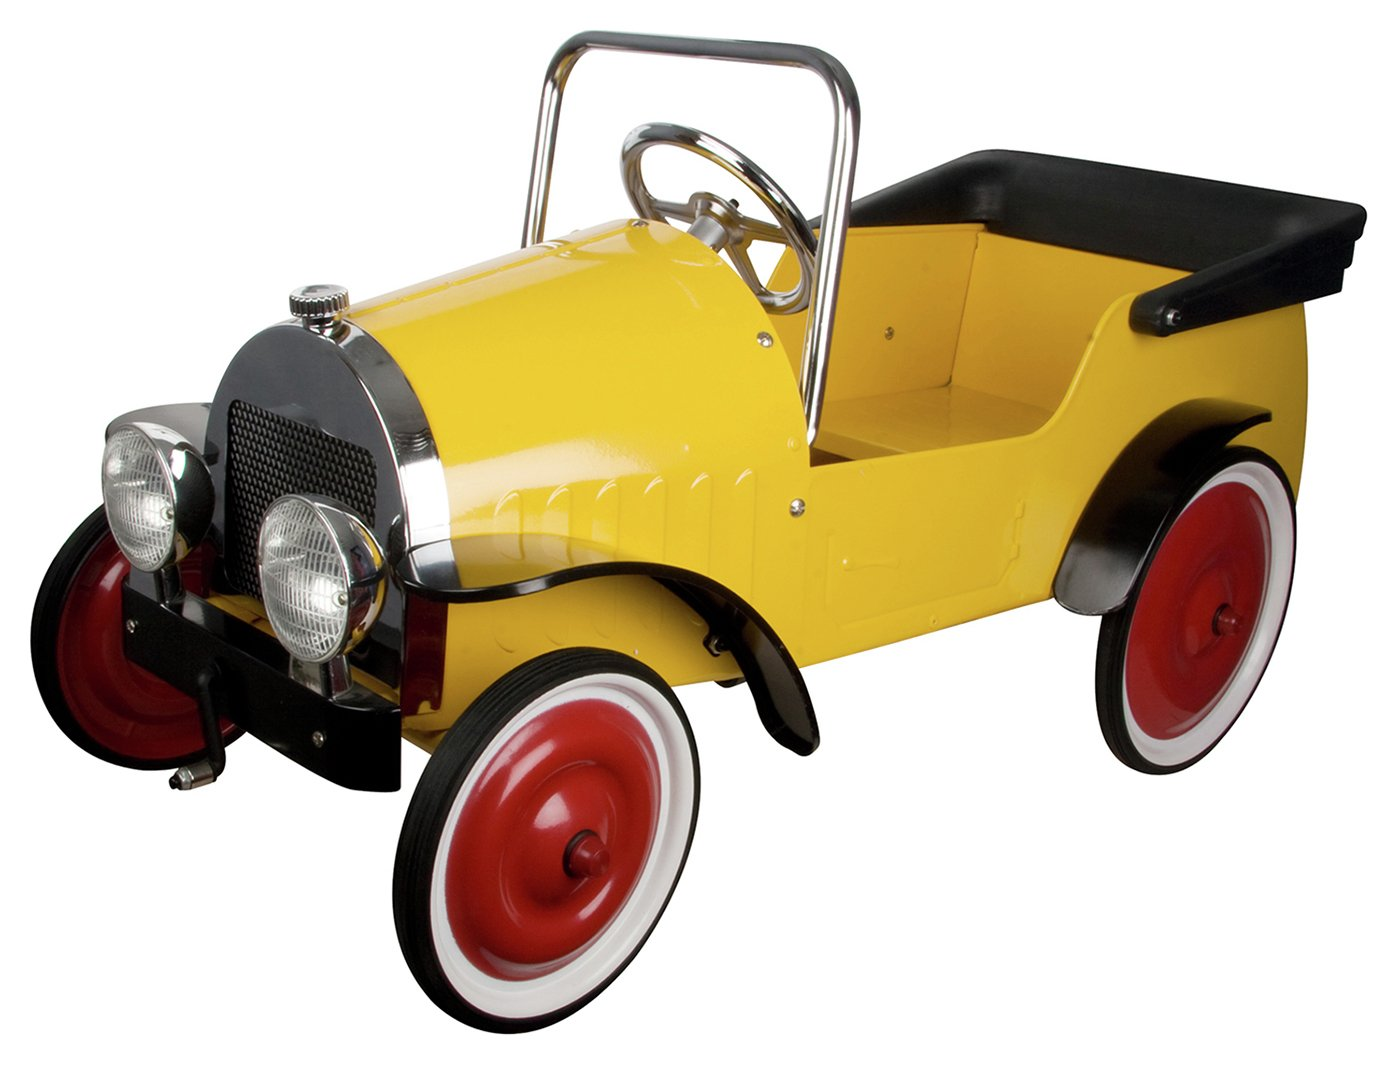 Image of Great Gizmos Classic Pedal Car - Harry.